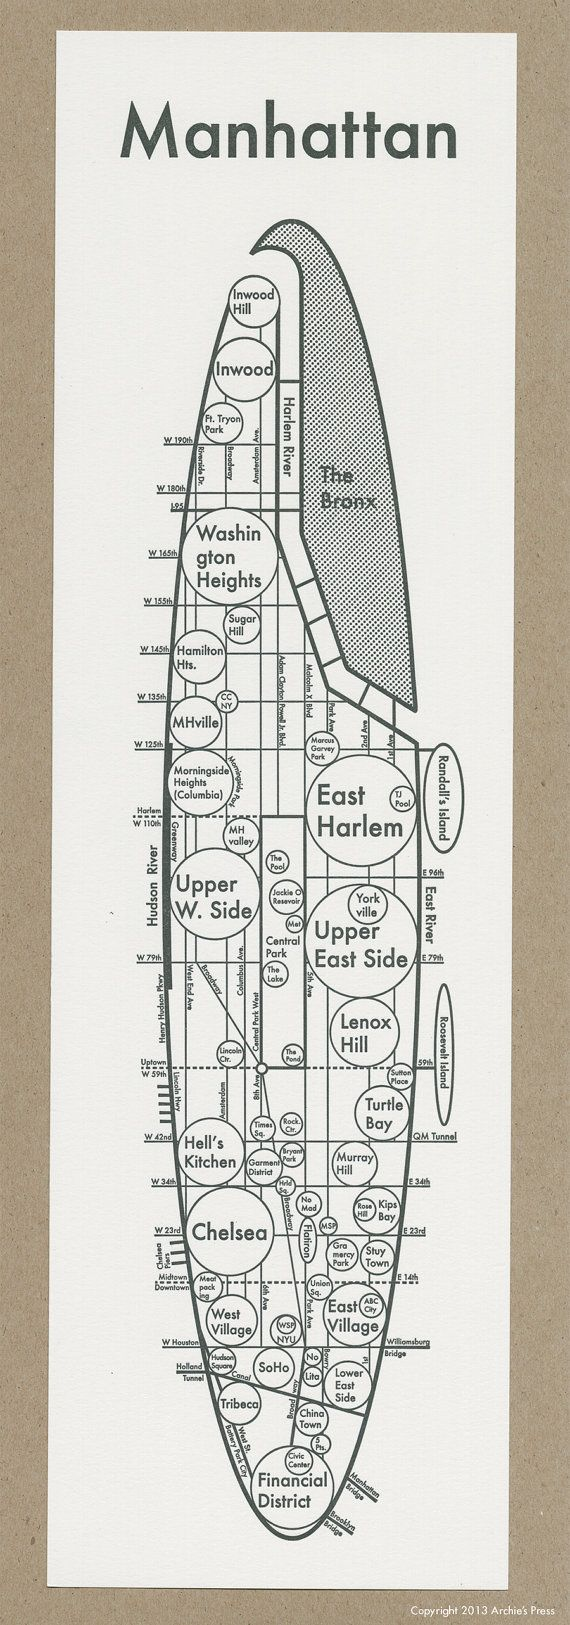 Best Images About NYC On Pinterest Restaurant New York And Nyc - Nyc rat map